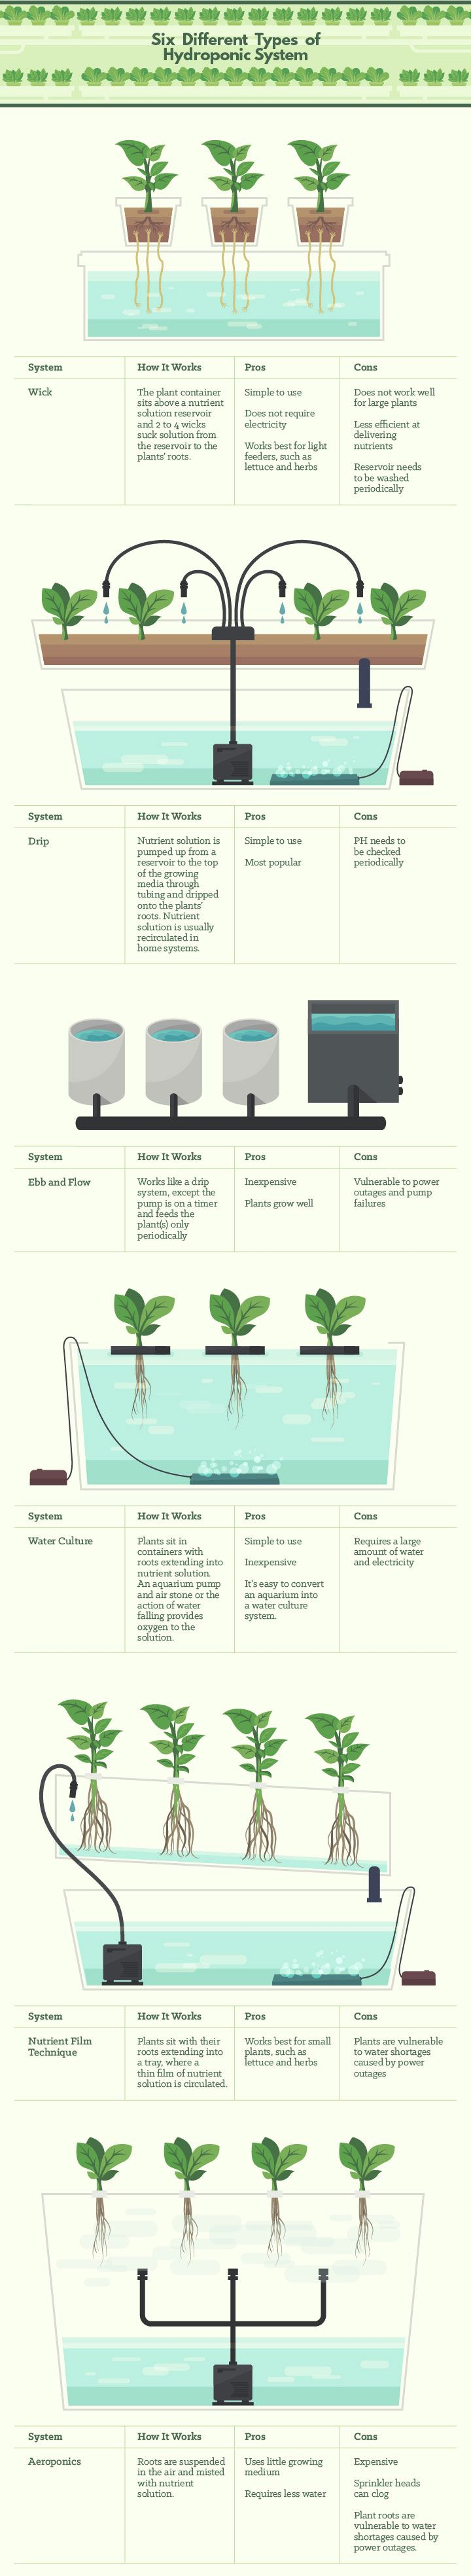 Six Different Types of Hydroponics